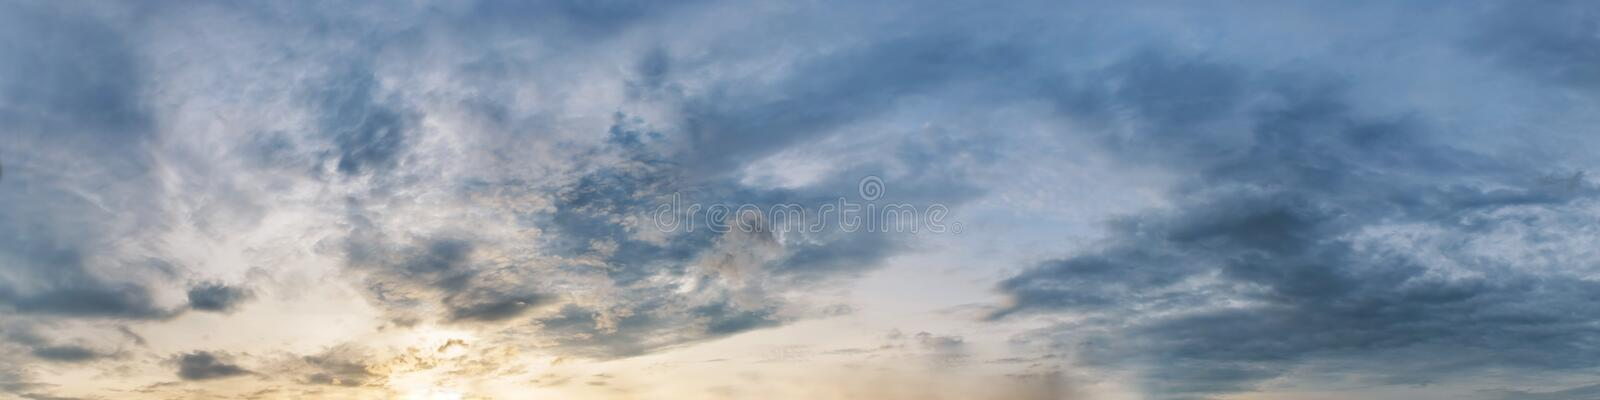 Dramatic panorama sky with cloud on sunrise and sunset time. Panoramic image stock photo